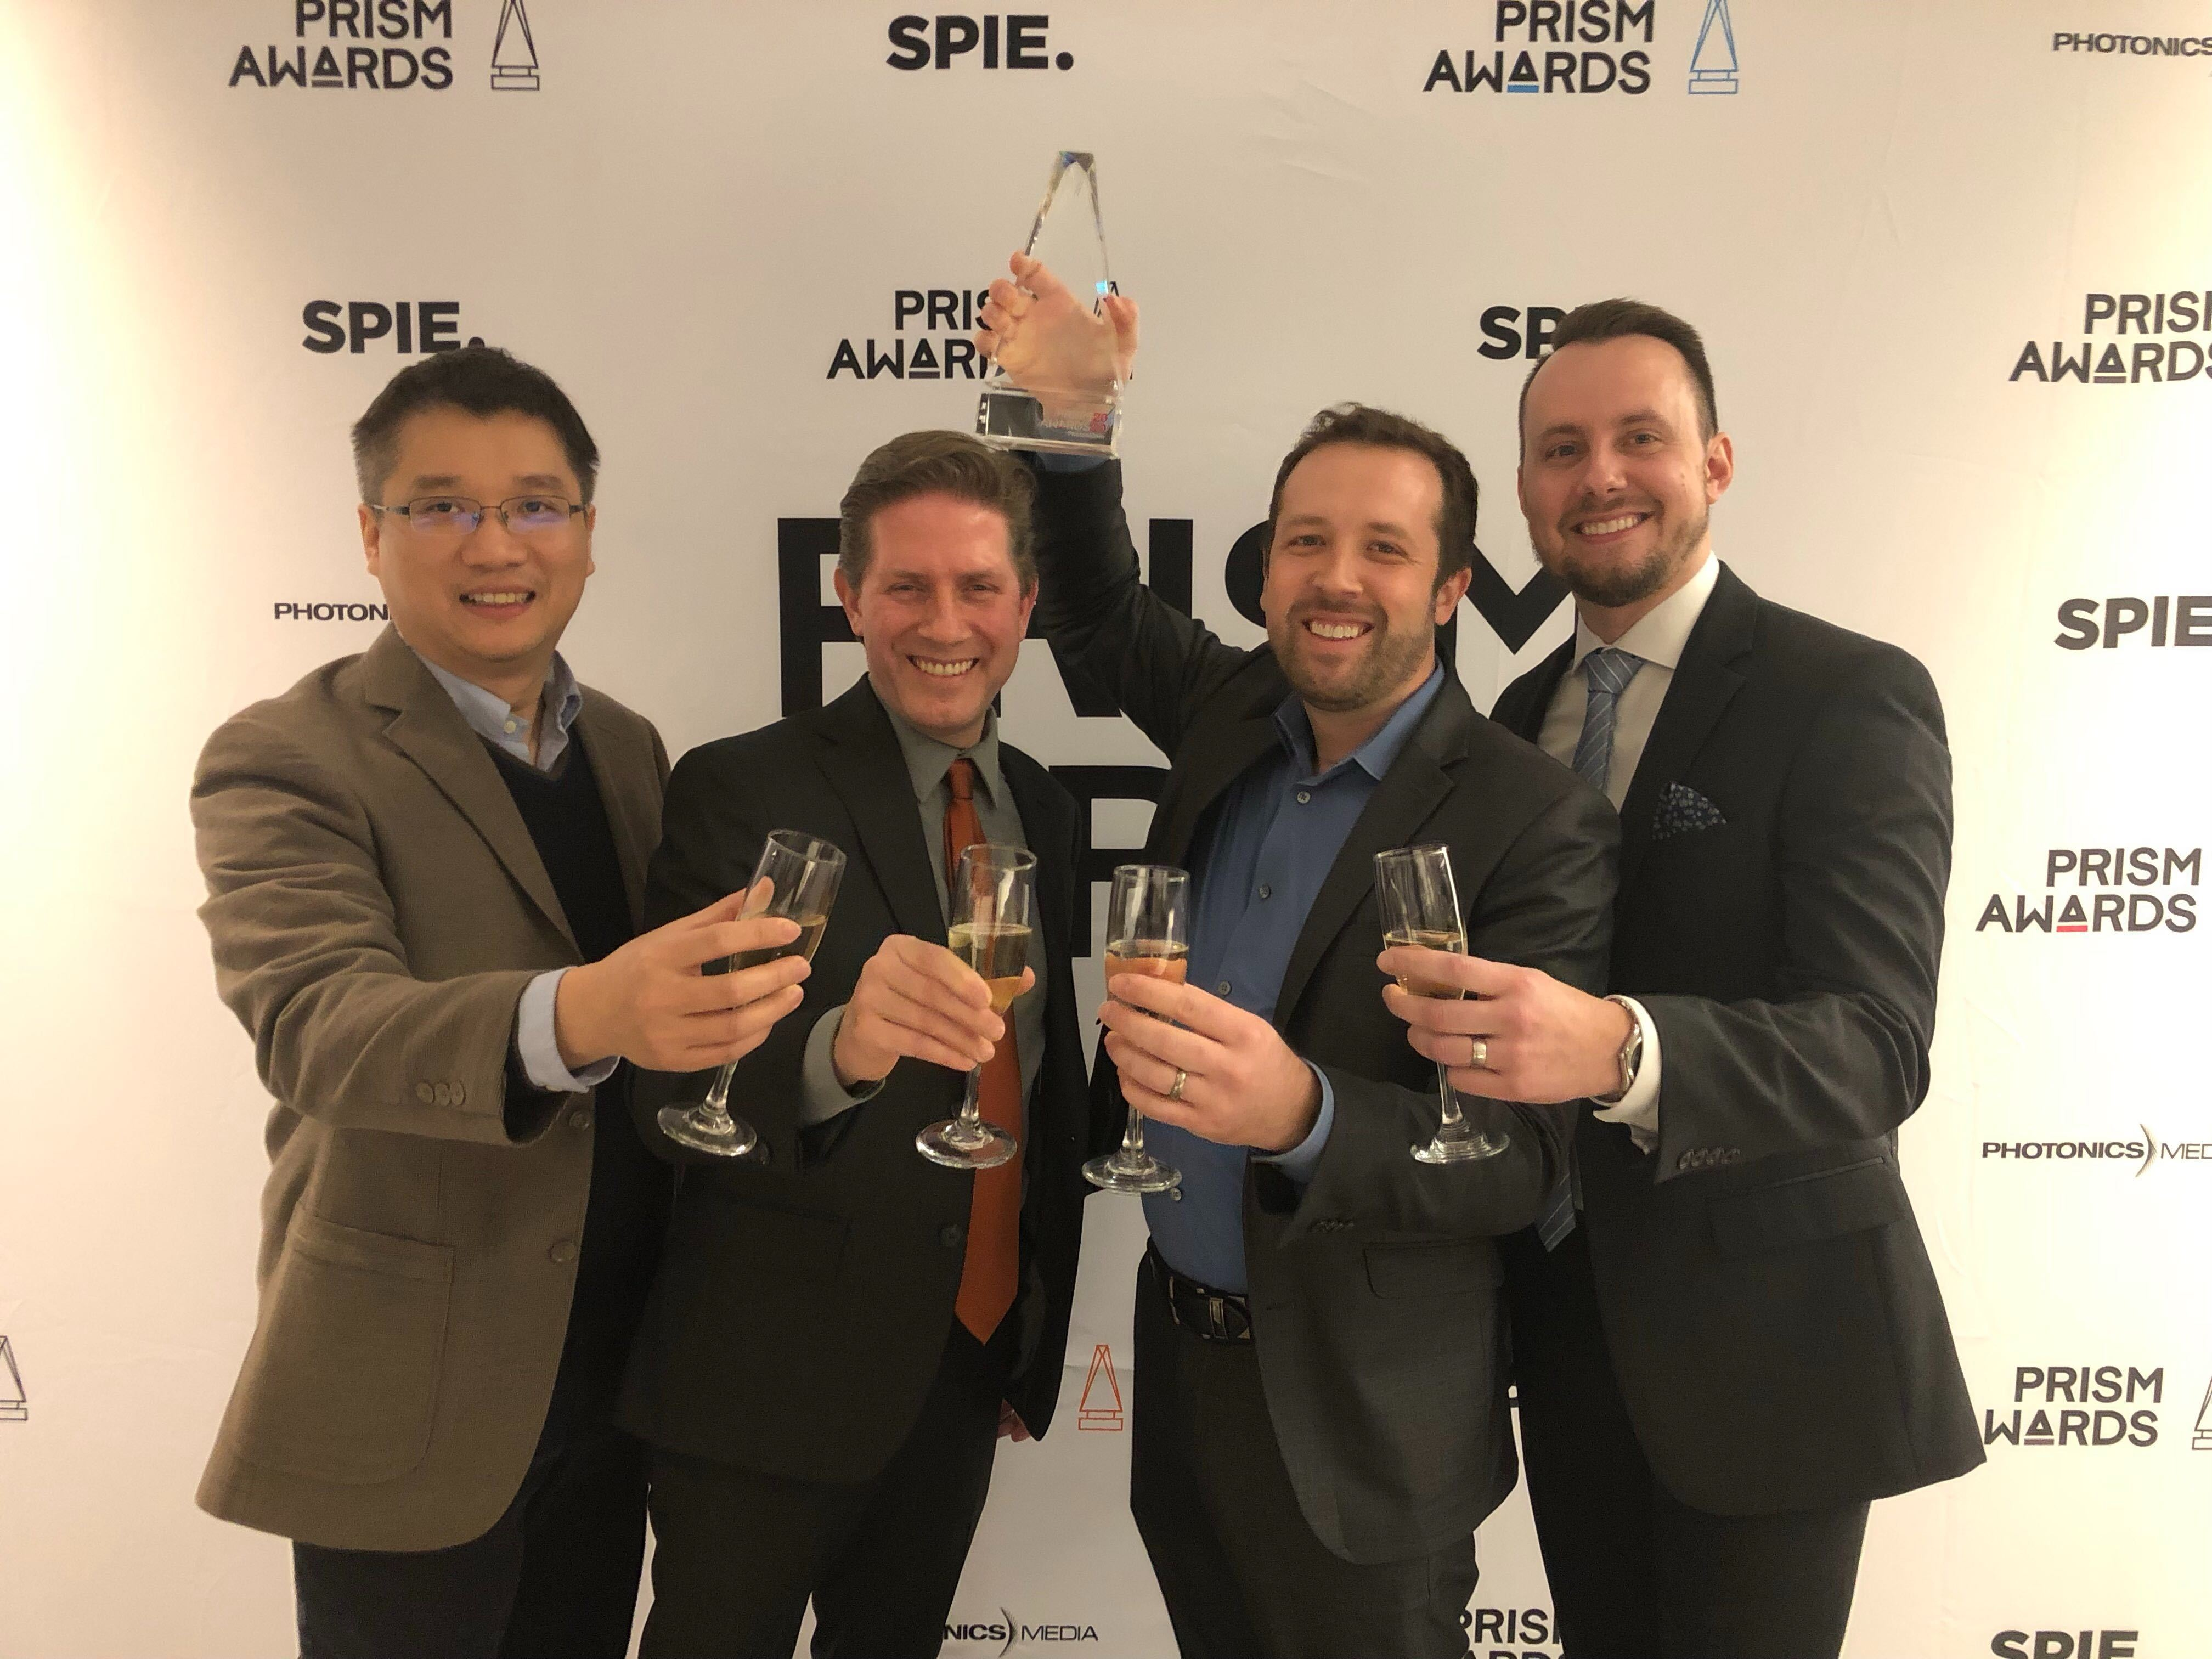 From left to right: Wei Kang, Stephen Boppart, Ryan Shelton, and Ryan Nolan (photo credit: Business Wire)